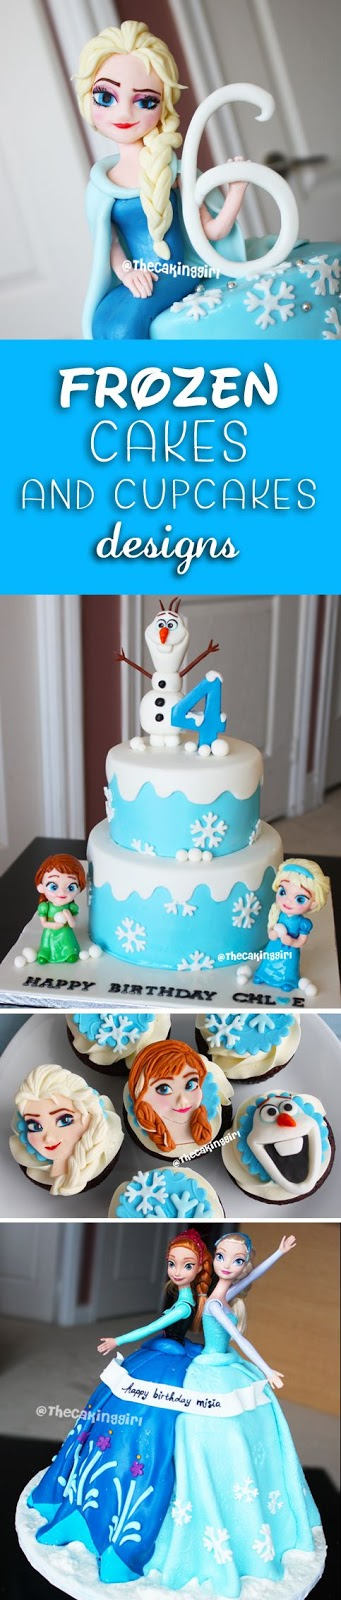 best disney frozen cakes designs tutorial